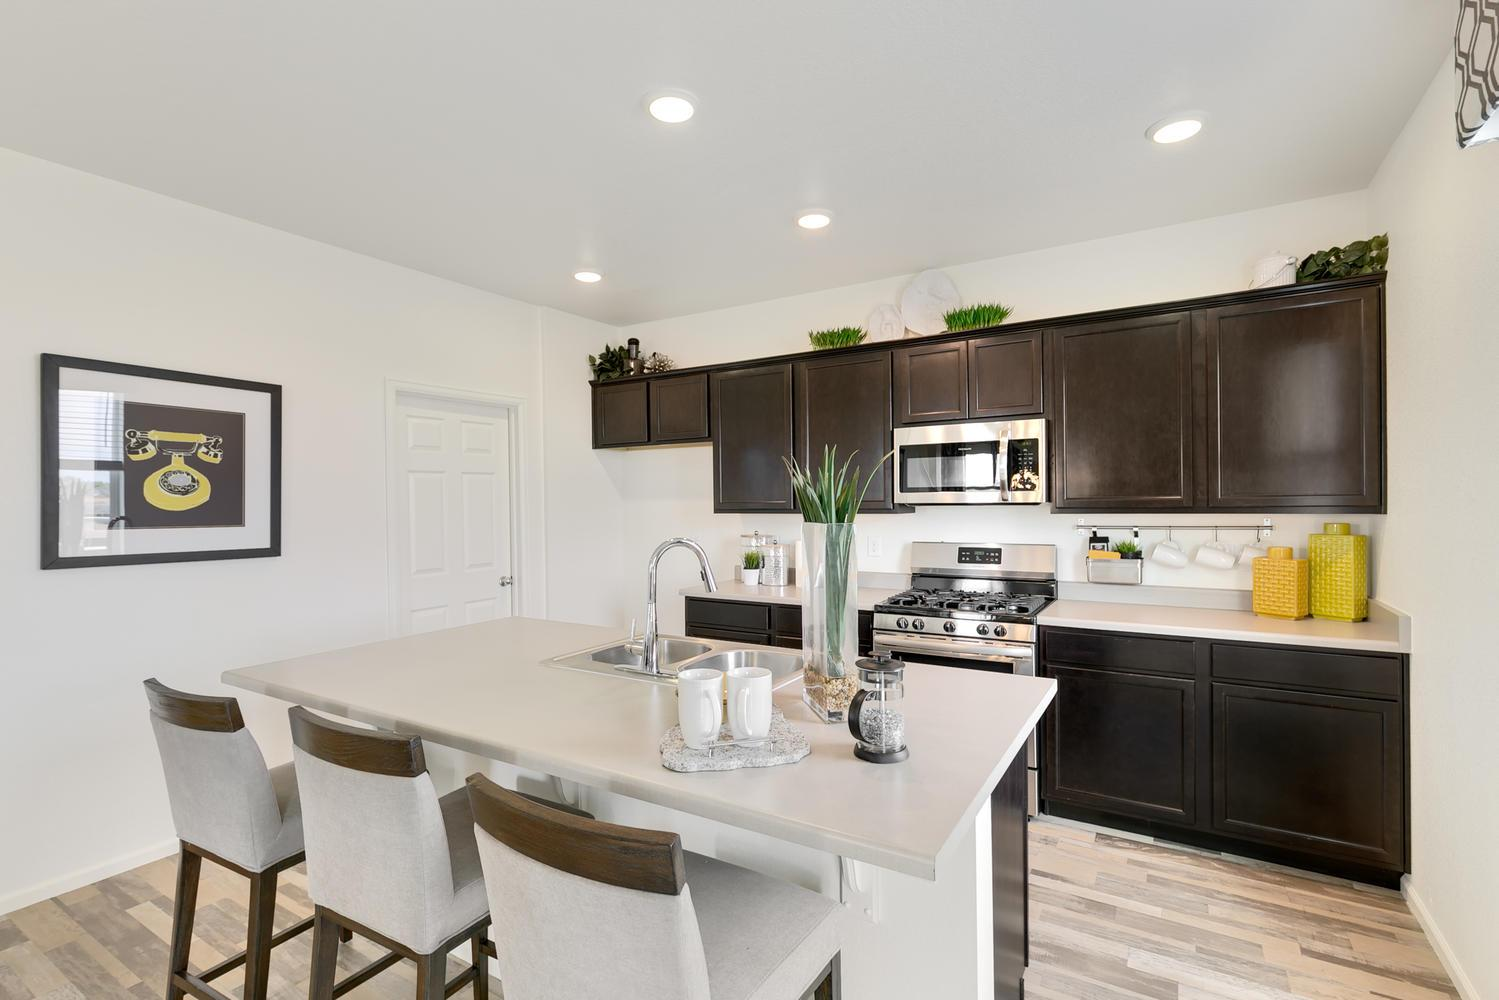 Kitchen featured in the GALEN By D.R. Horton in Fort Collins-Loveland, CO